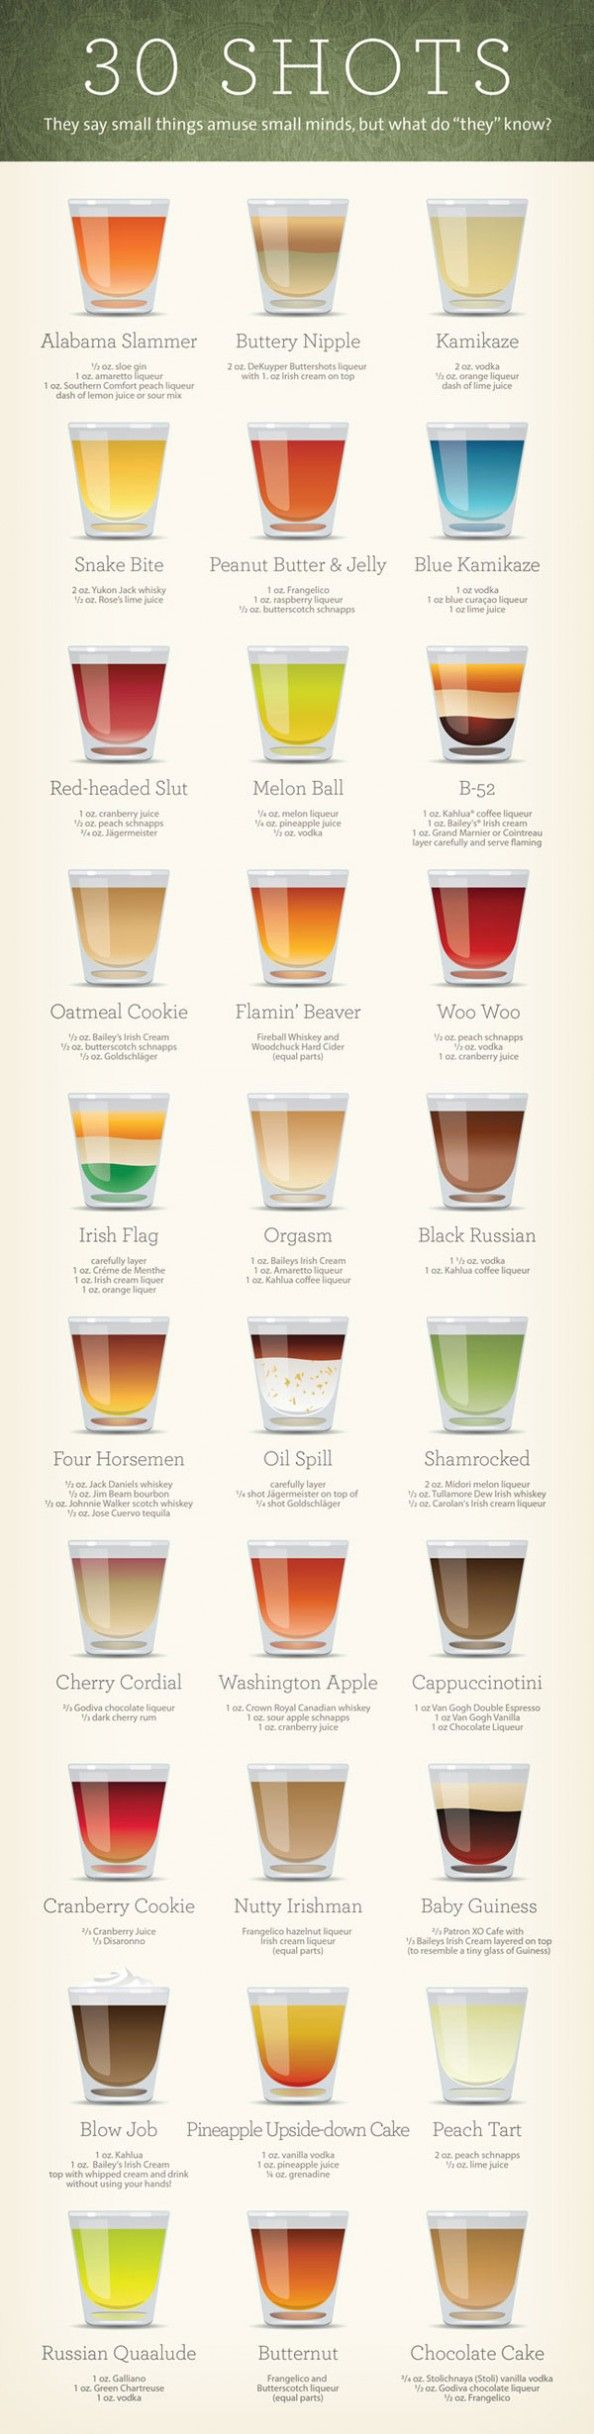 30 types of shots